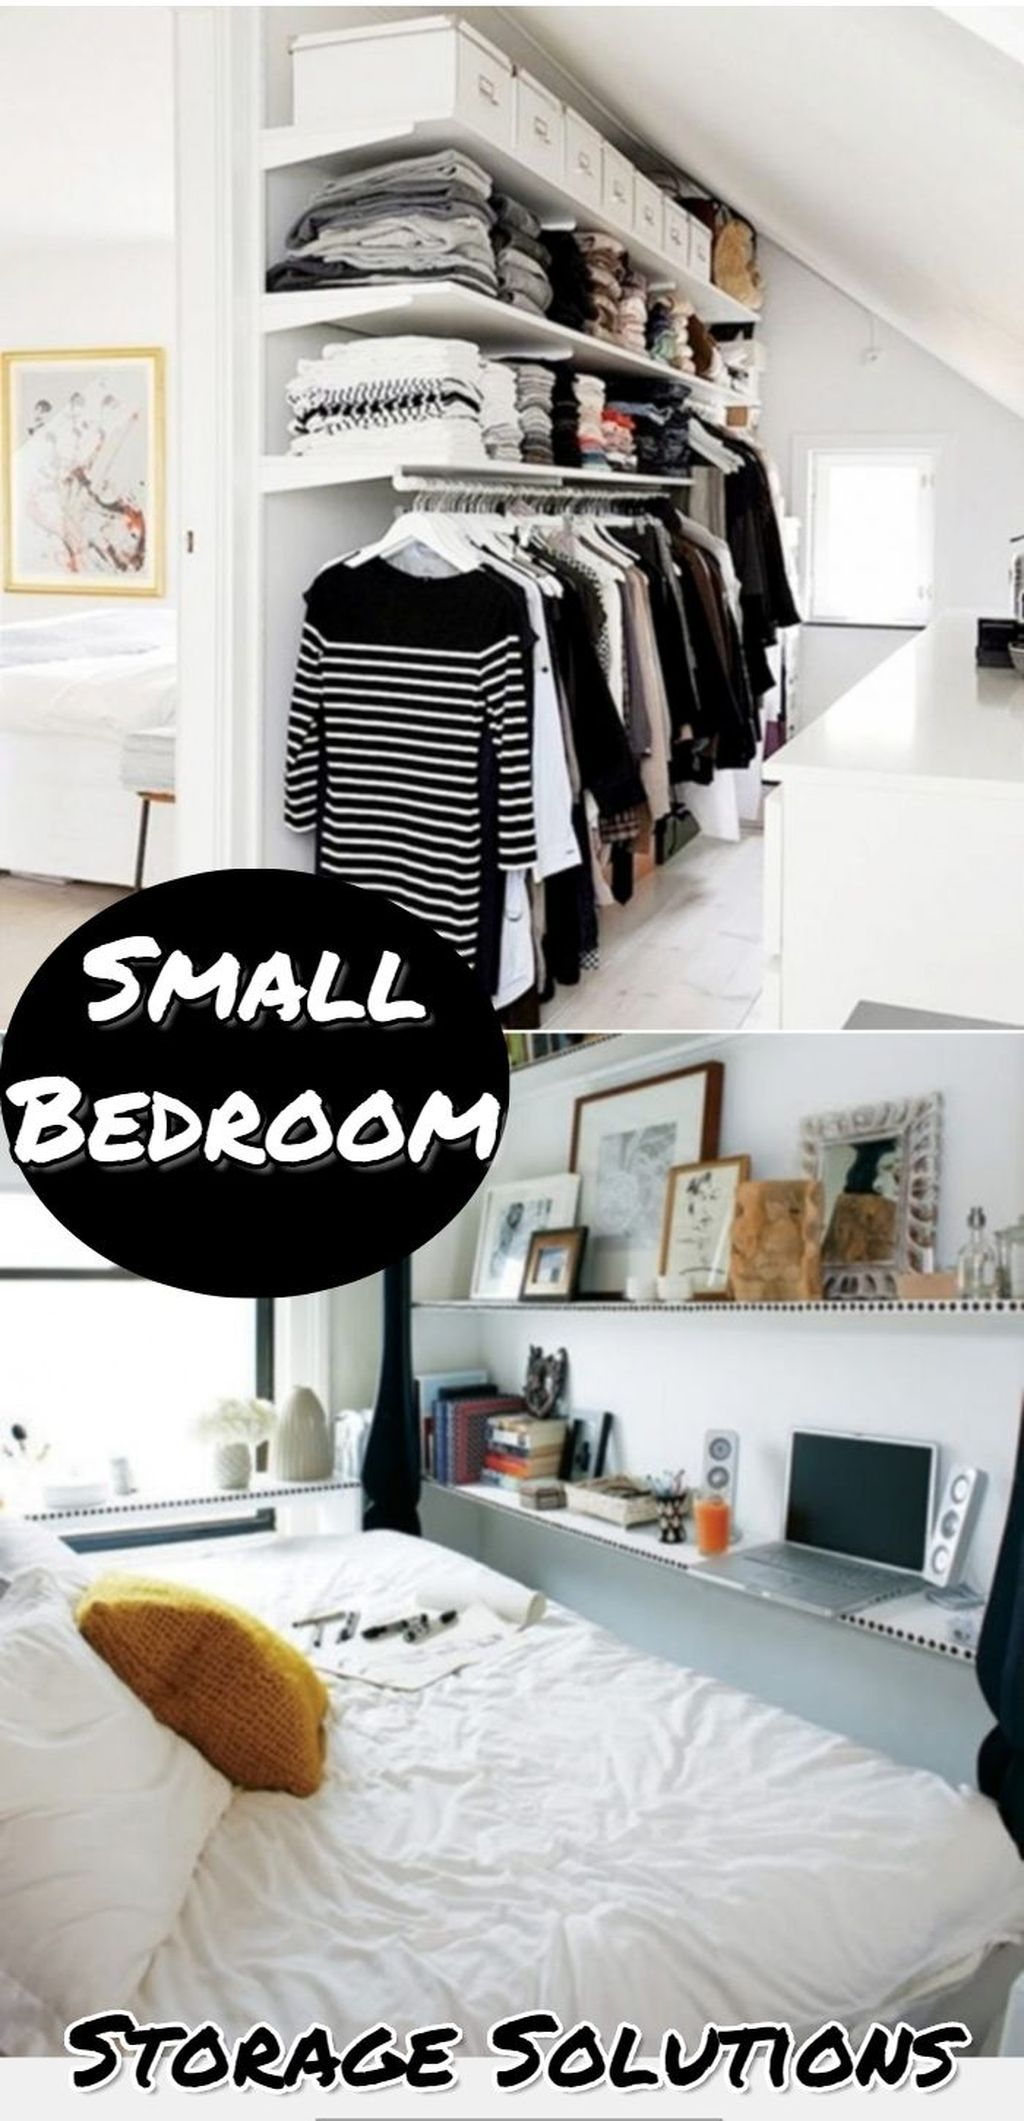 Best 30 Storage Solutions For Small Spaces Diy Small Bedroom 400 x 300